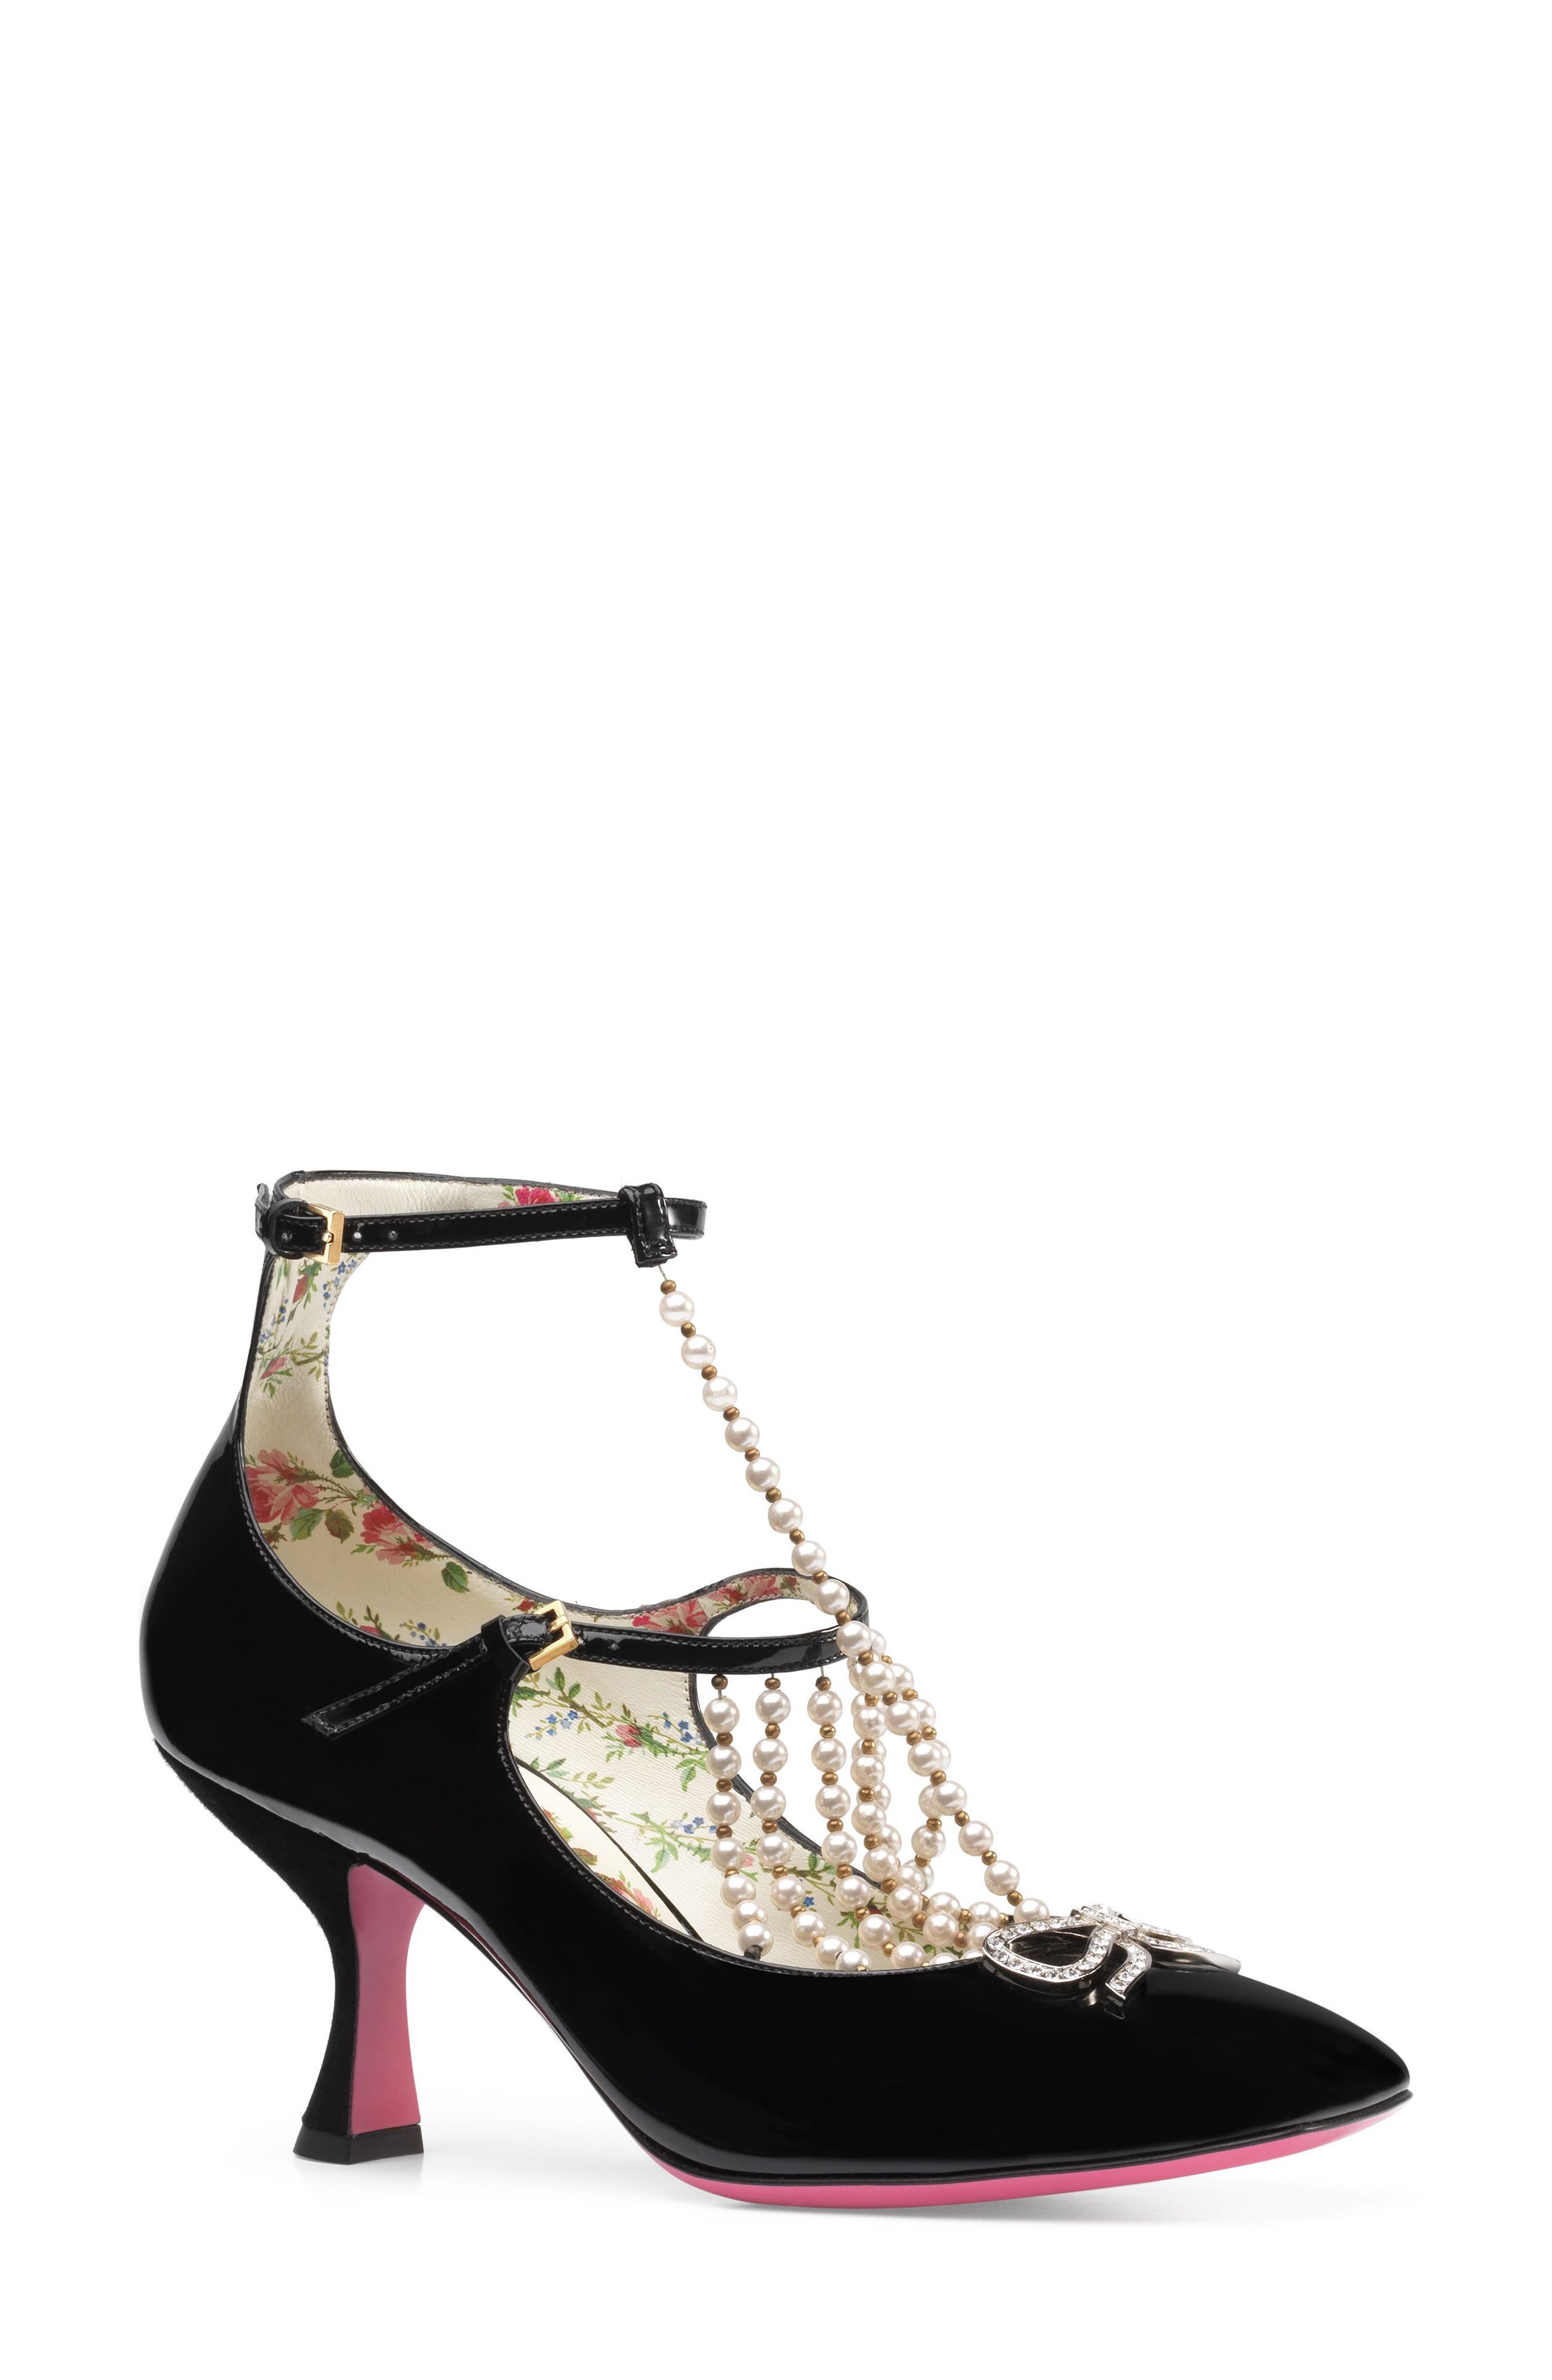 Main Image - Gucci Taide Embellished Pump (Women)